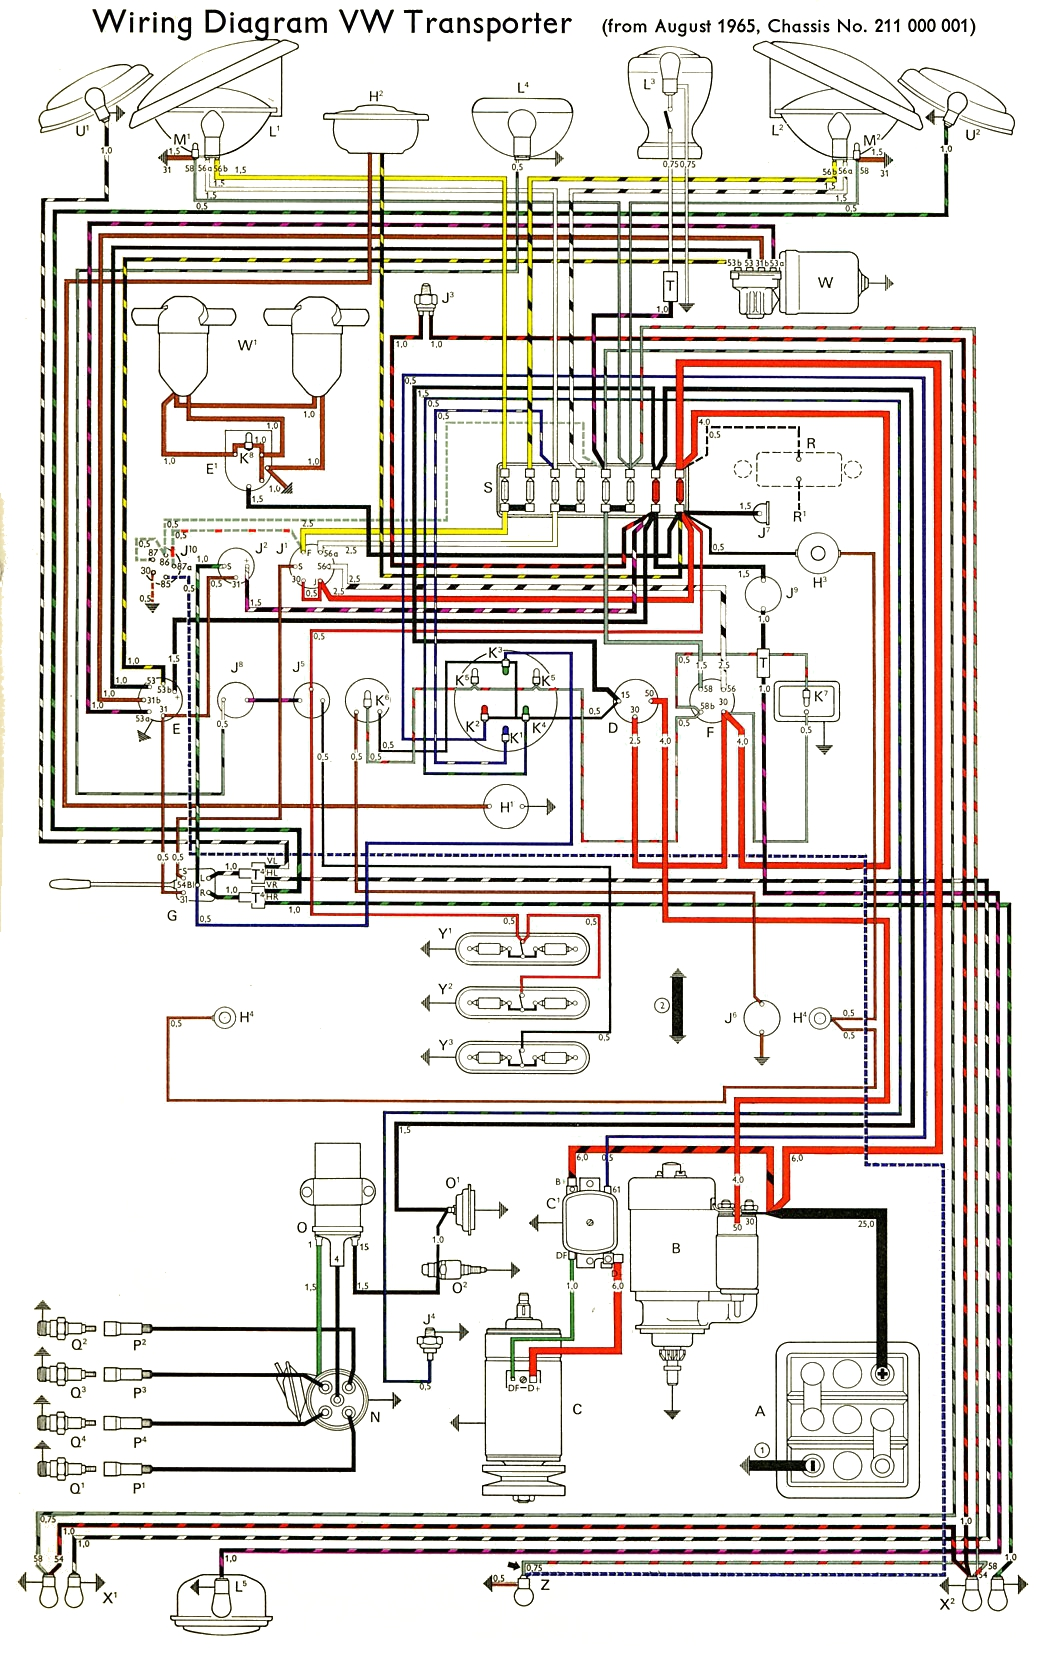 vw wiring diagram alternator 240 volt ist wieviel watt 70 type 3 get free image about